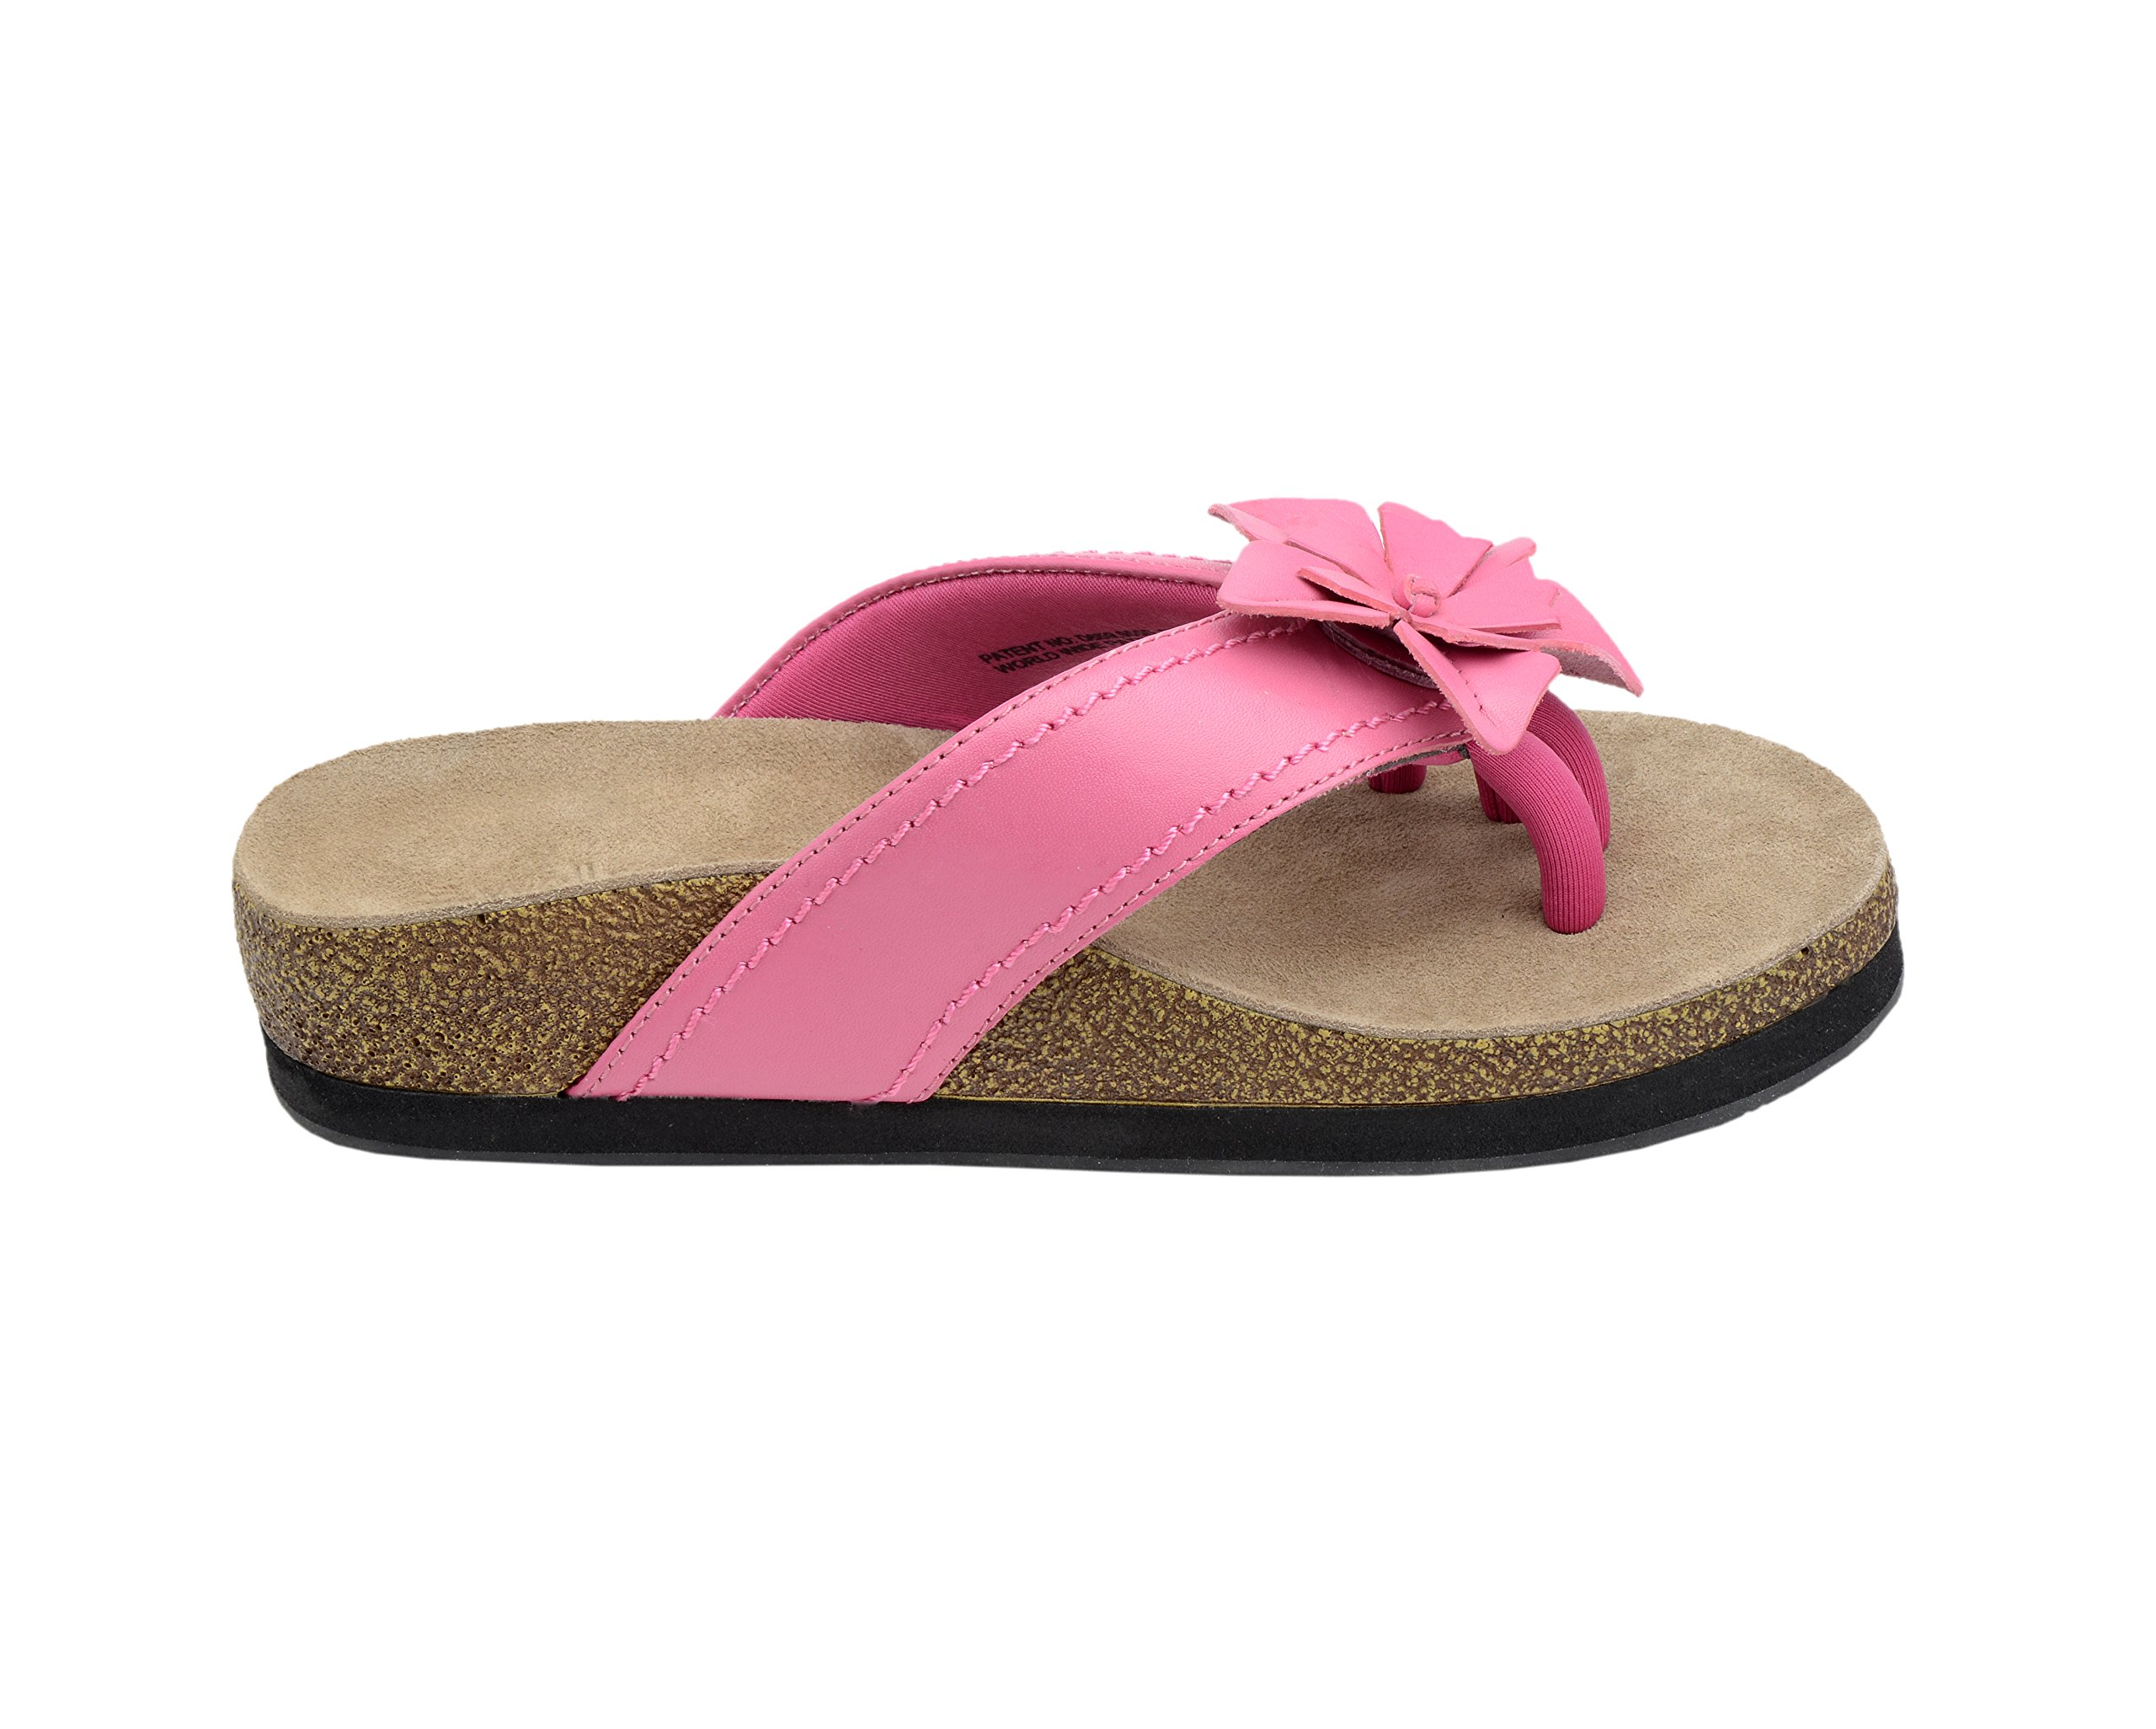 Wellrox Women's Terra-Chloe Hot Pink Casual Sandal 11 by Wellrox (Image #3)